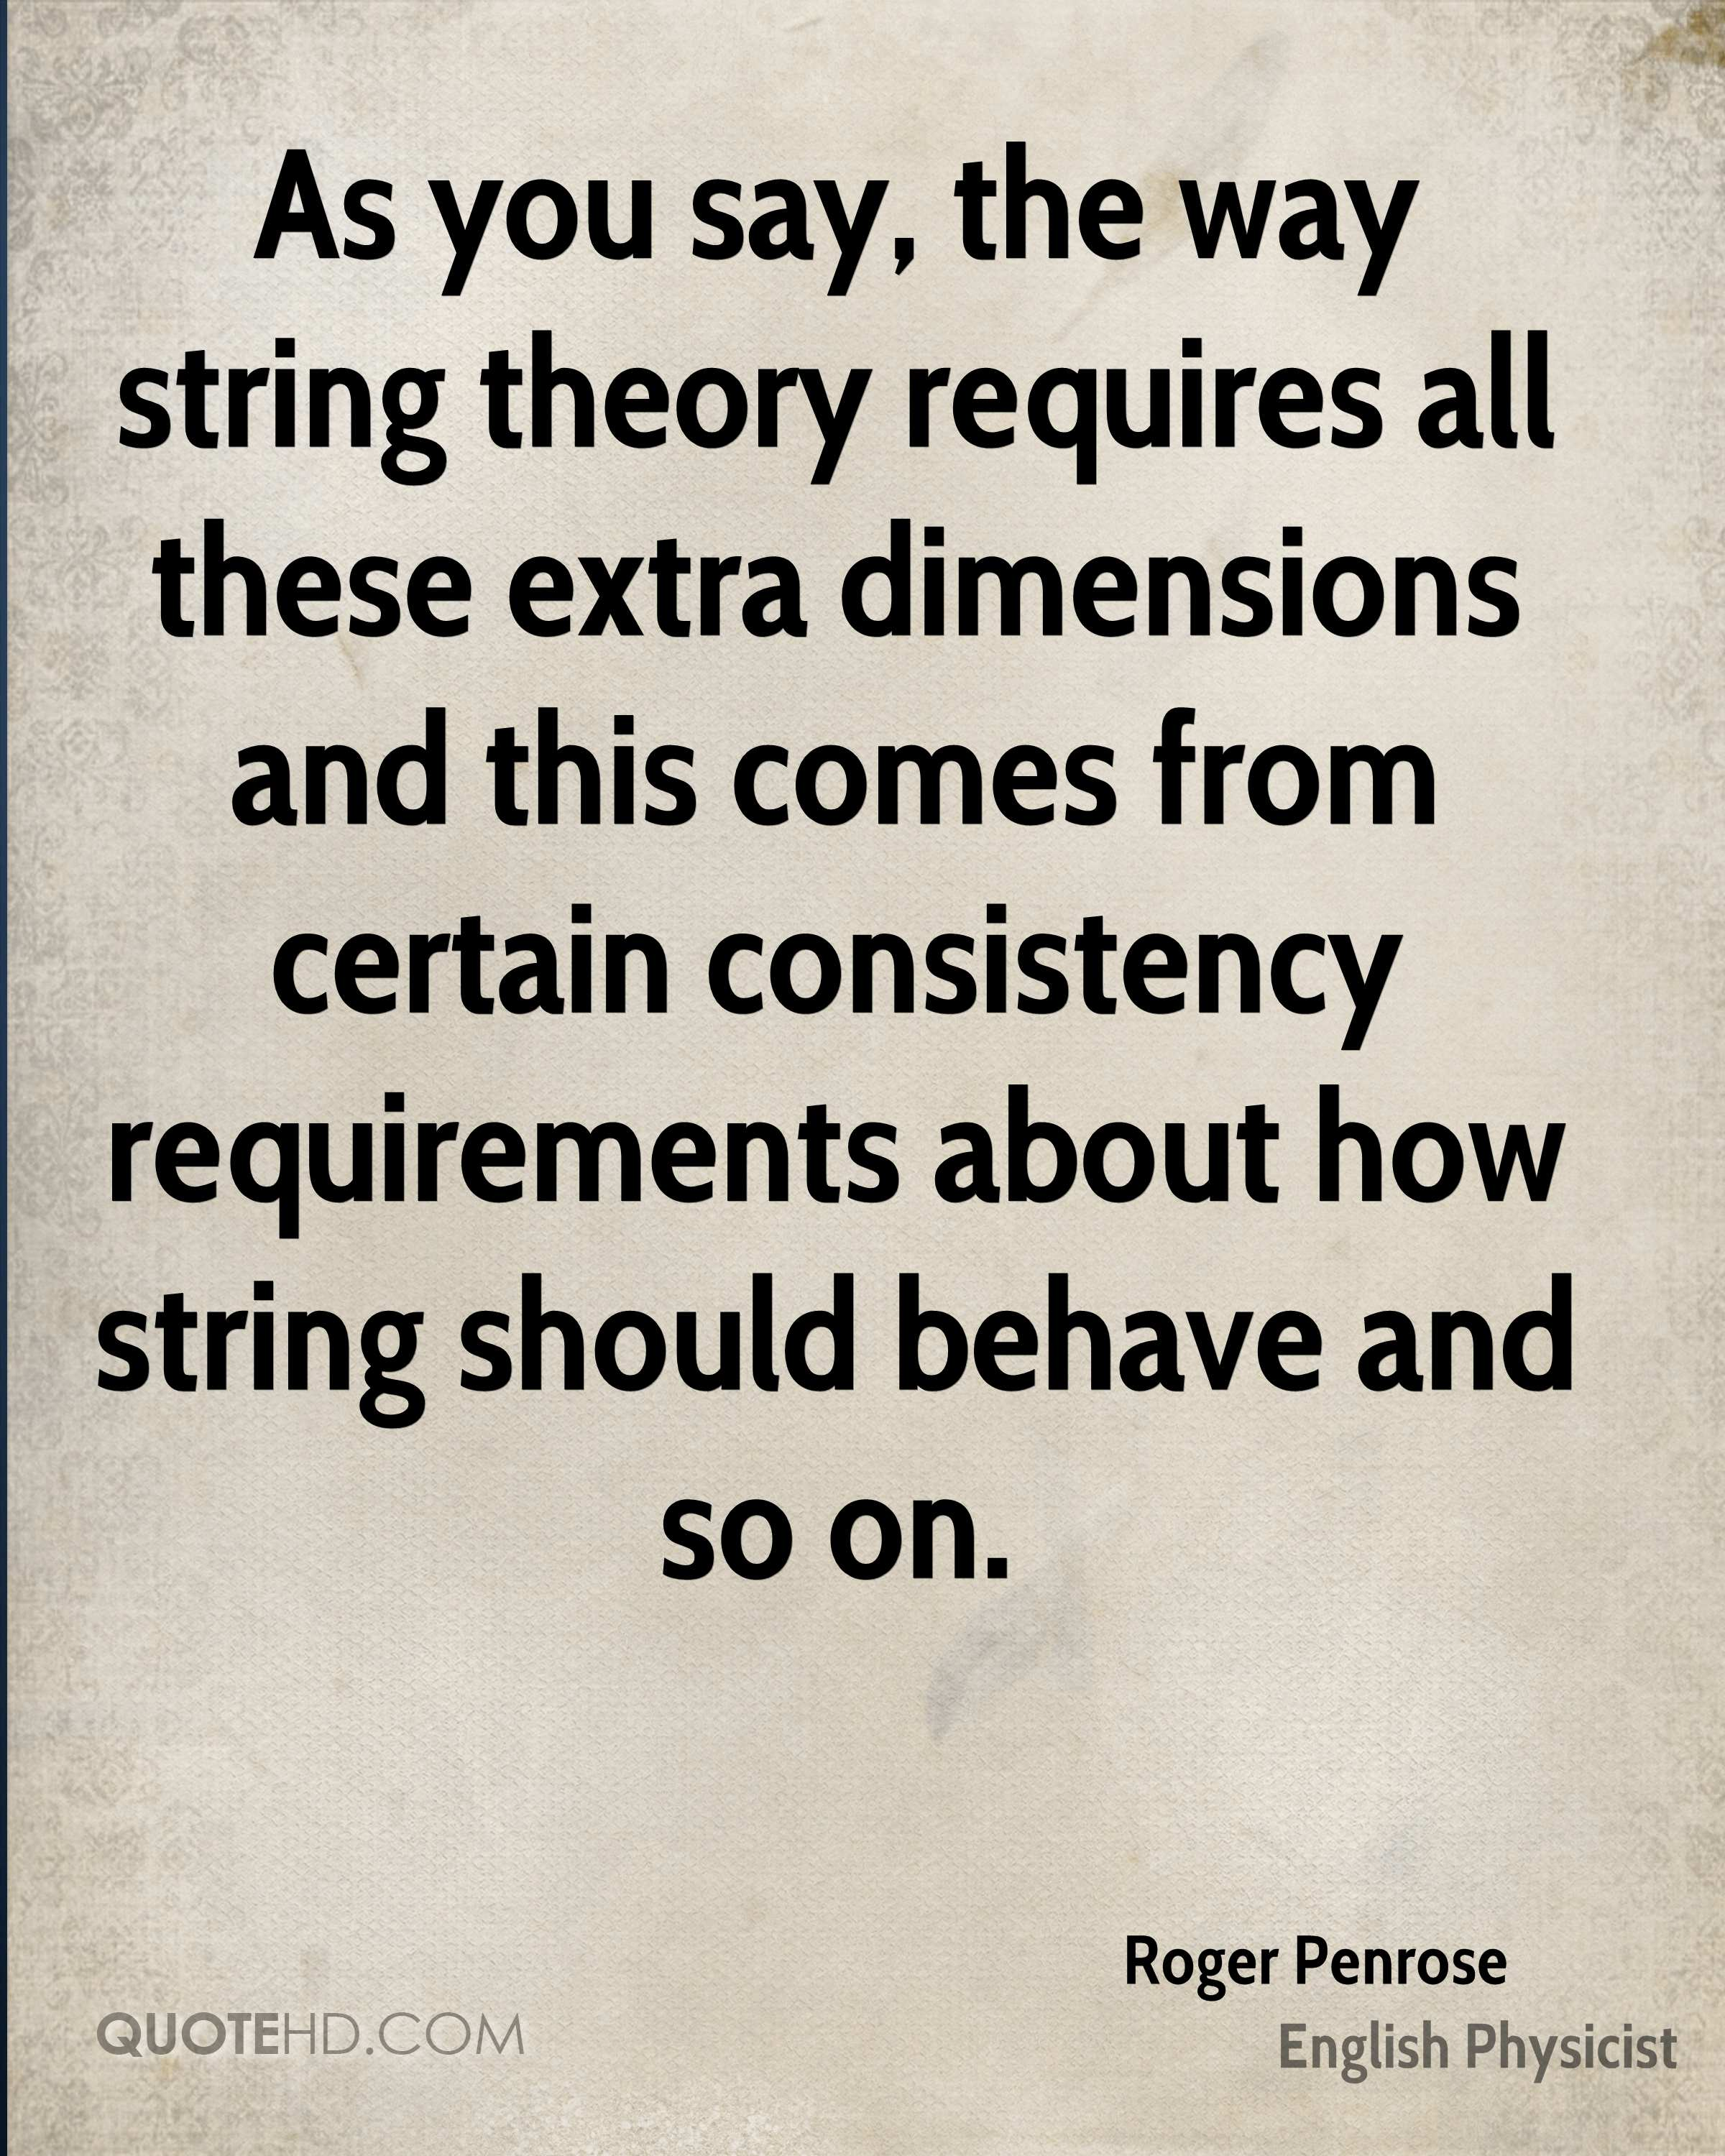 As you say, the way string theory requires all these extra dimensions and this comes from certain consistency requirements about how string should behave and so on.